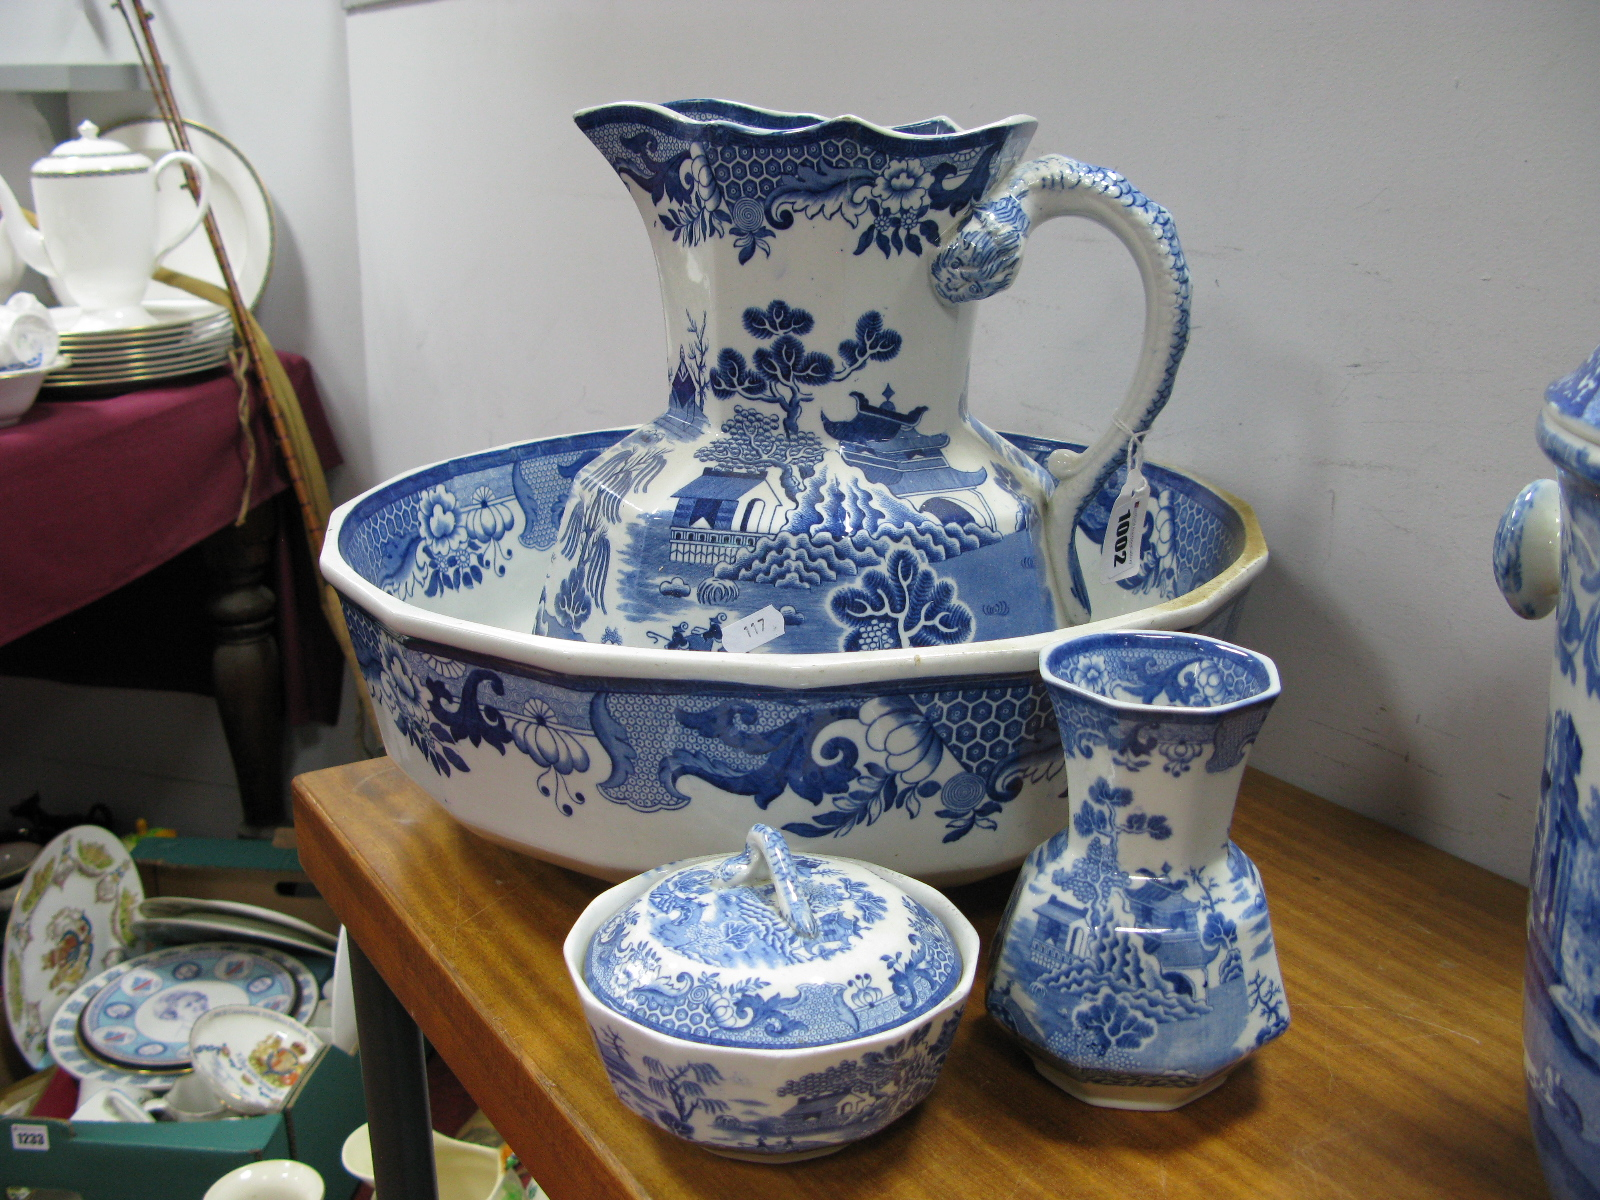 Lot 1002 - An Early XX Century Mason's Ironstone Toilet Jug and Bowl, Toothbrush Holder and Soap Dish,